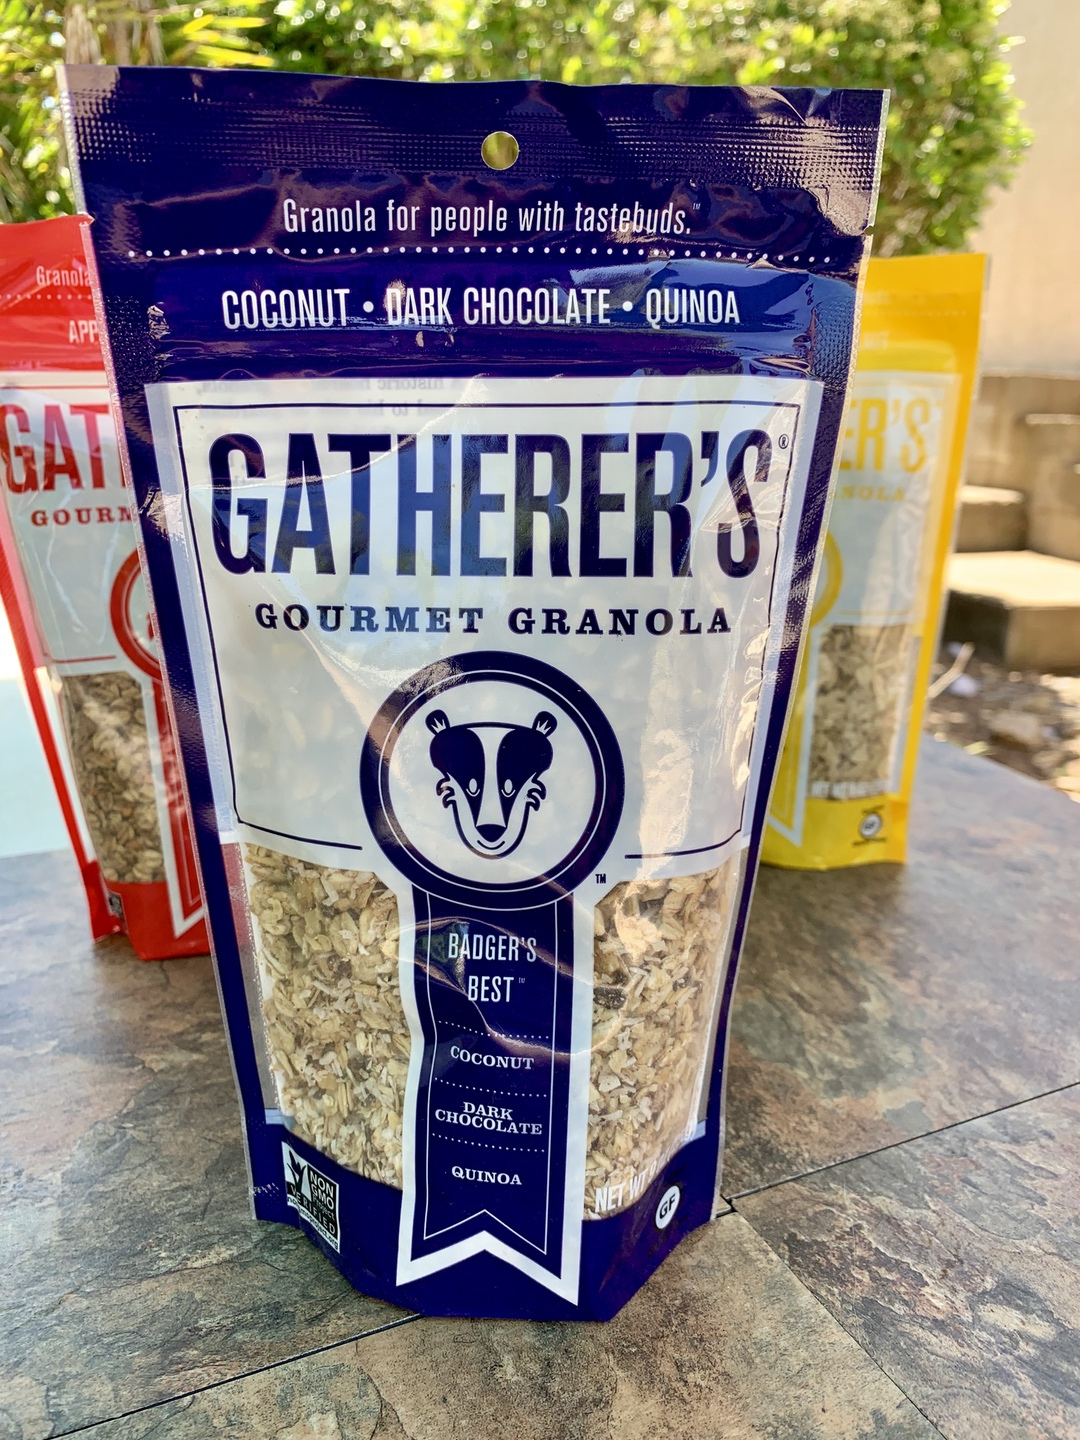 Gatherer's Granola Badger's Best